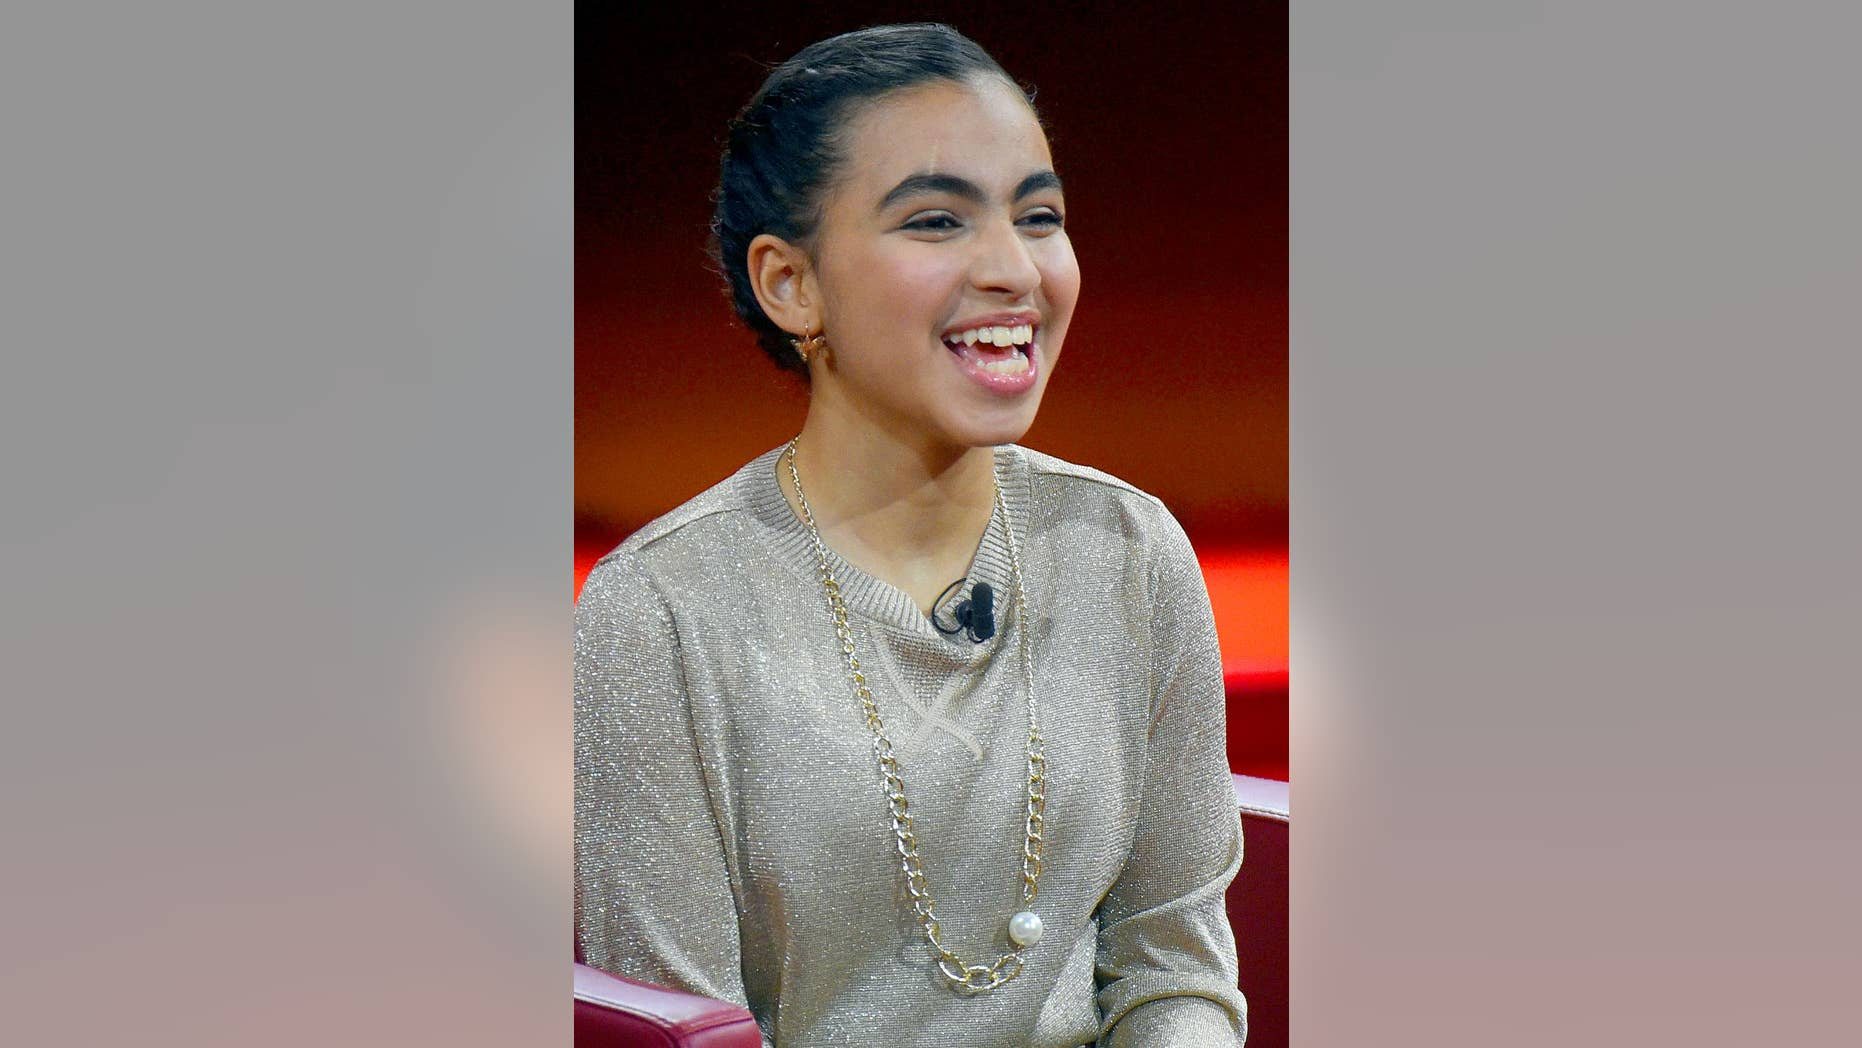 FILE - In this Dec. 6, 2015 file picture Palestinian student Reem Sahwil sits on stage during RTL's end-of-year review '2015! Menschen, Bilder, Emotionen' (lit. People, images, emotions) in Huerth, Germany. The Palestinian girl whose encounter with German Chancellor Angela Merkel made waves last year says the incident was a turning point in her life.  Reem Sawhil burst into tears during a town hall event with Merkel last July as she recounted how she feared that she or her family might be deported. Sawhil told German weekly Bild am Sonntag that she had gained confidence following the incident and recently attempted to walk unaided.  (Henning Kaiser/dpa via AP,file)